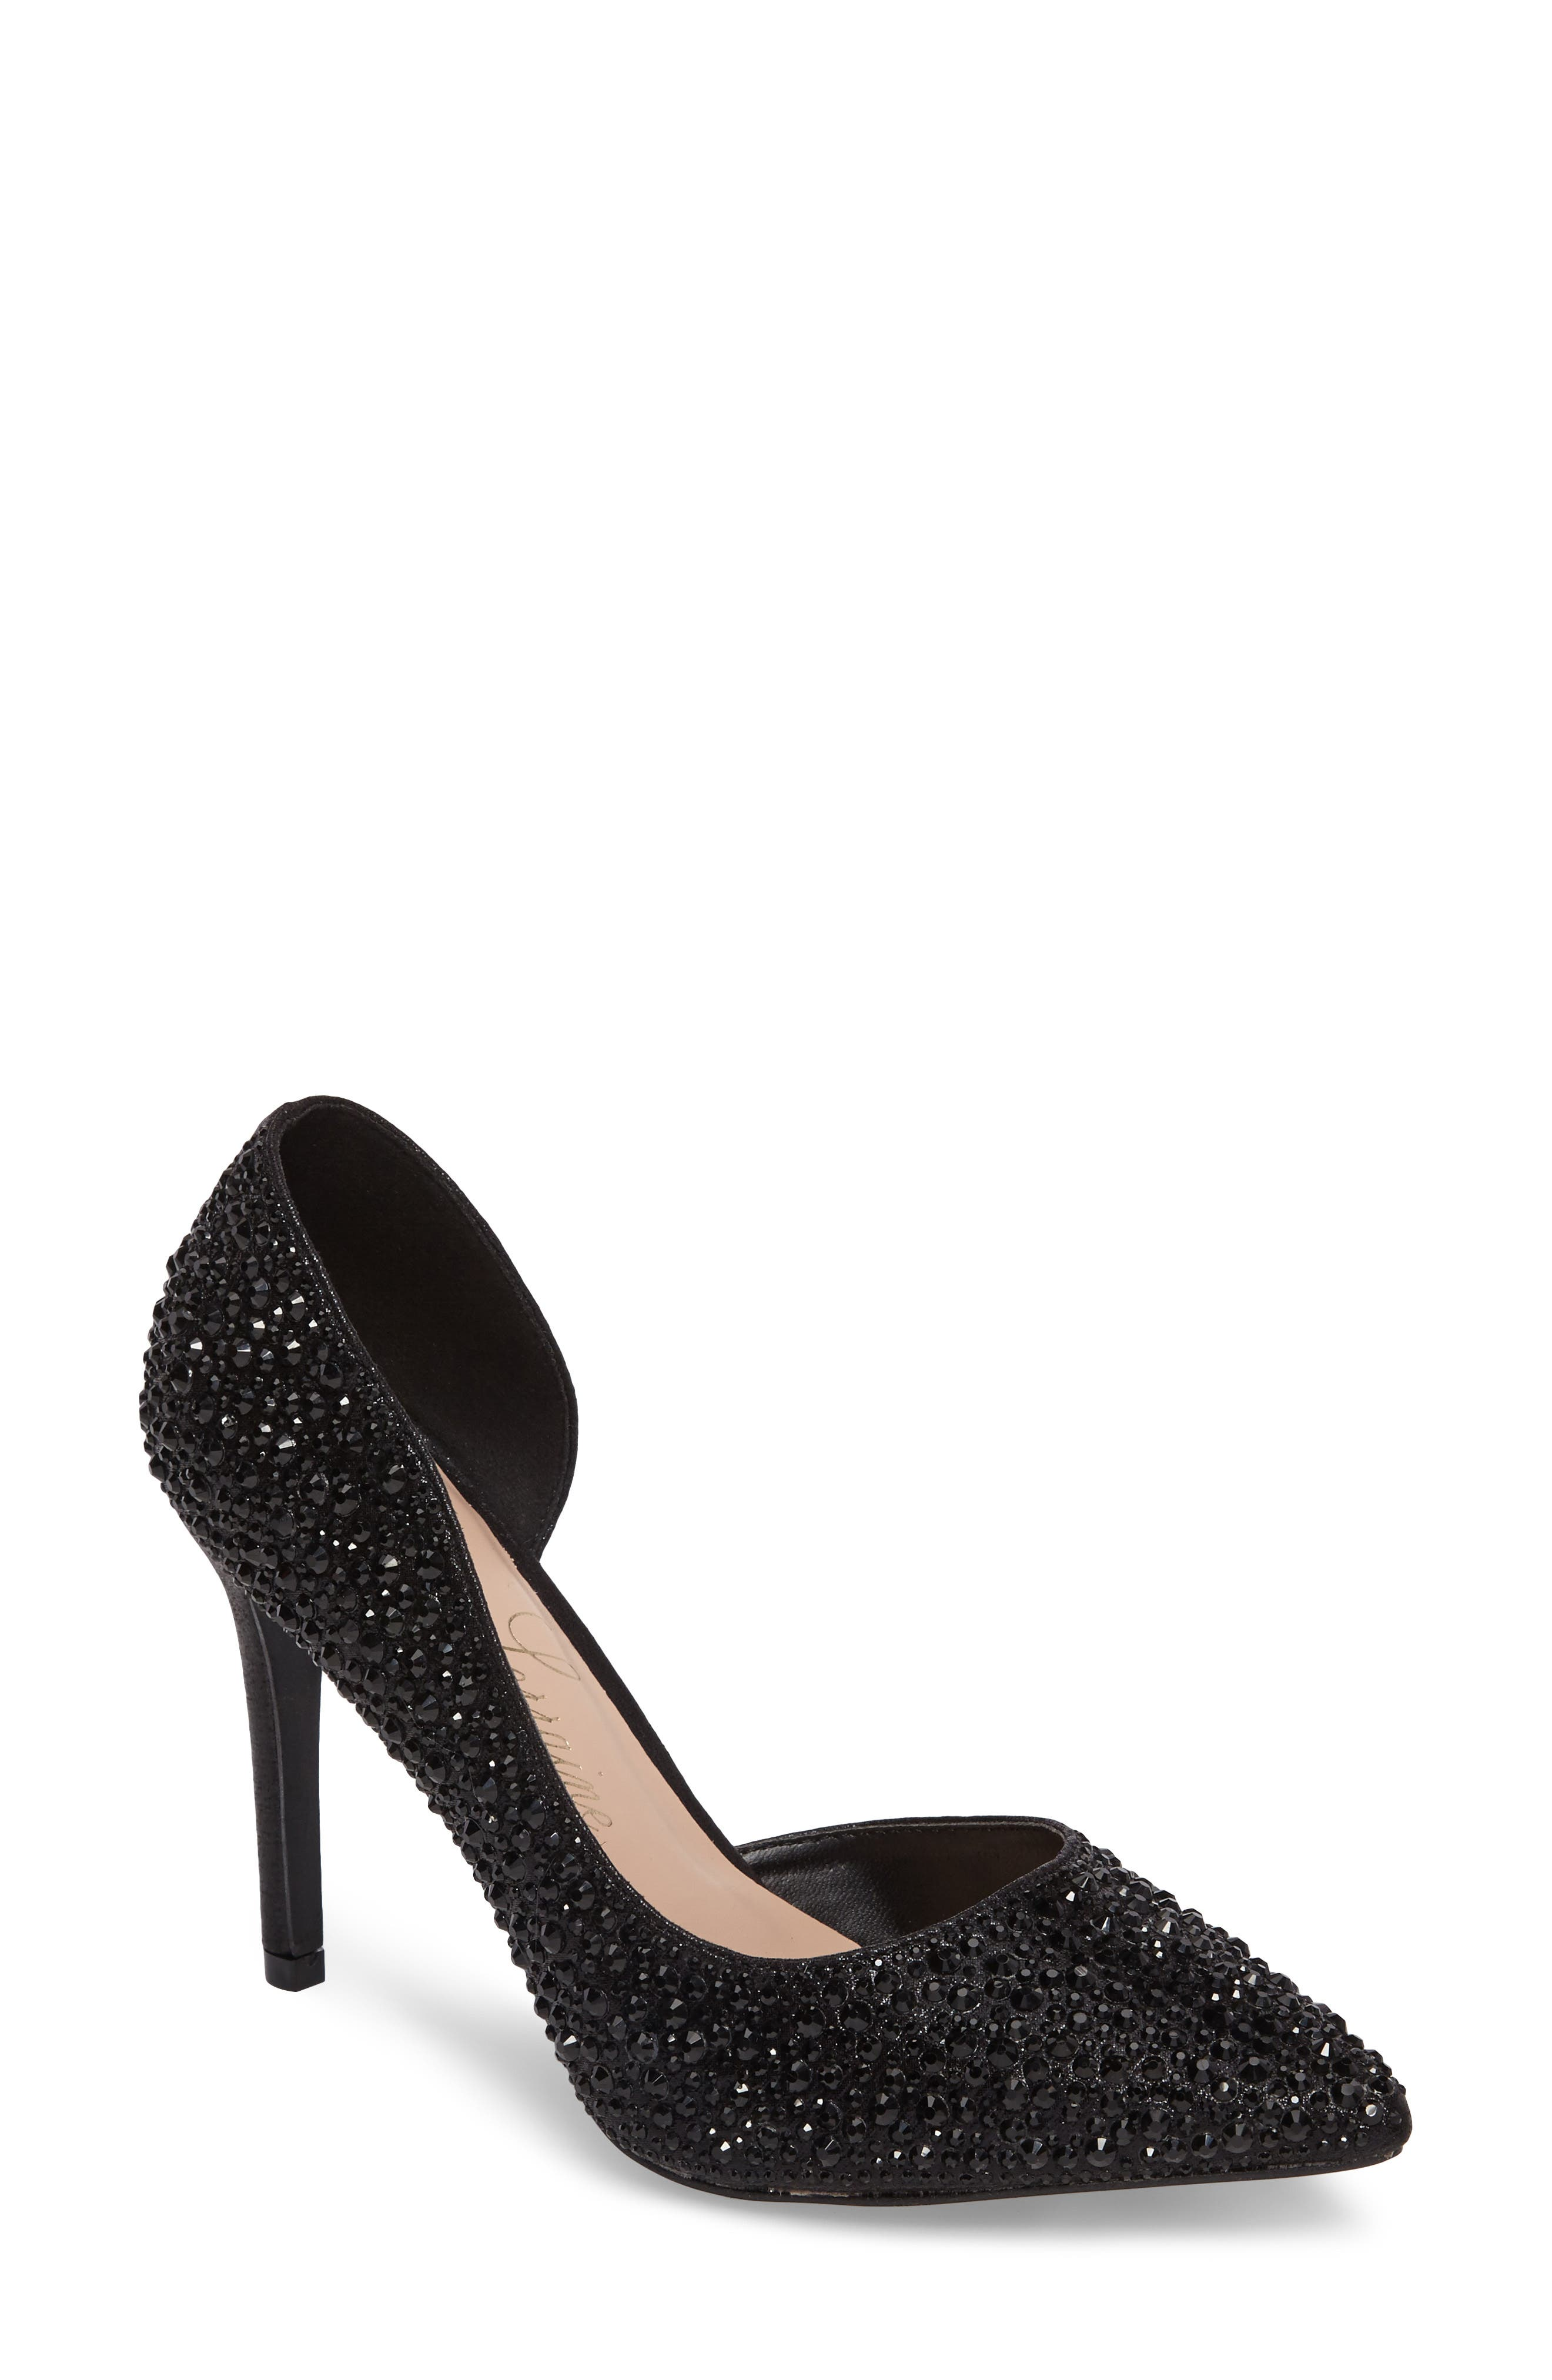 Ruby Embellished Half d'Orsay Pump,                             Main thumbnail 1, color,                             001